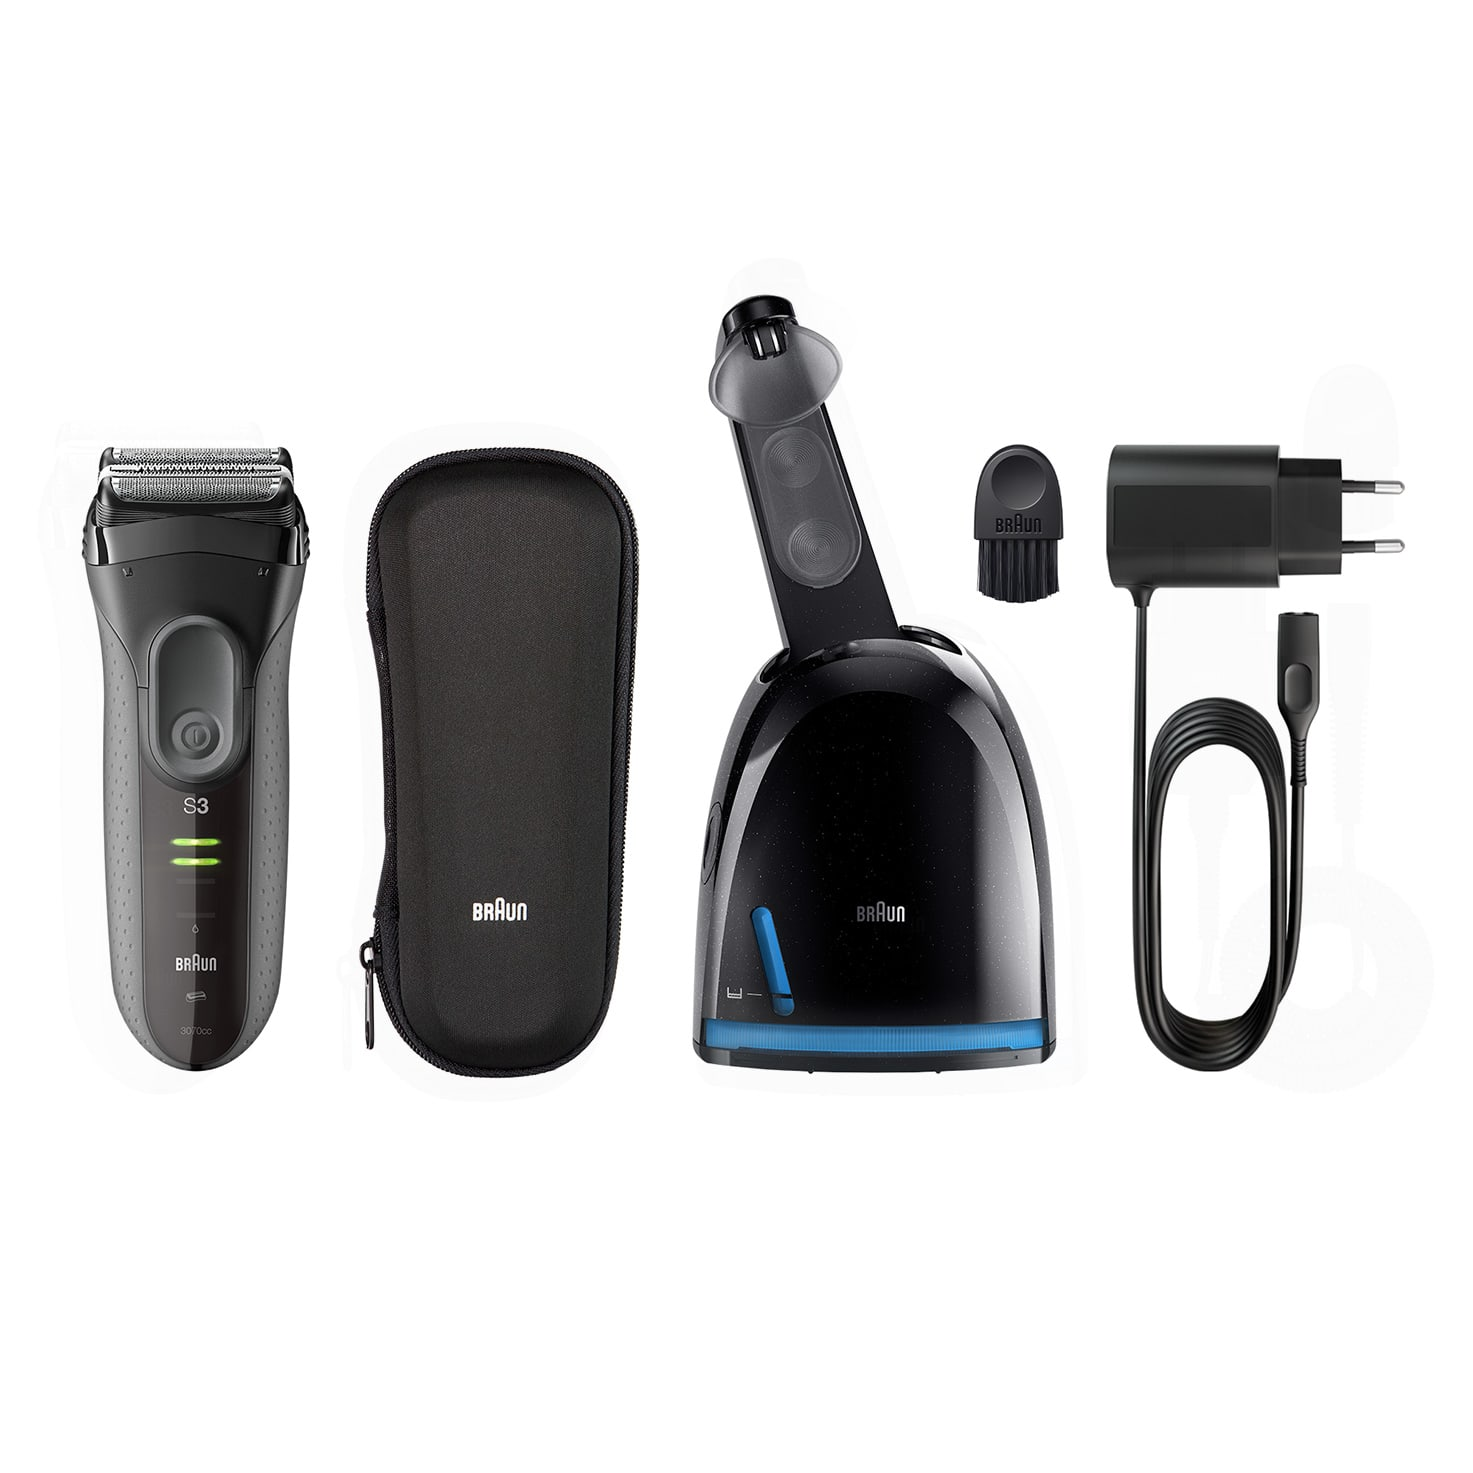 Series 3 ProSkin 3070cc shaver - What´s in the box